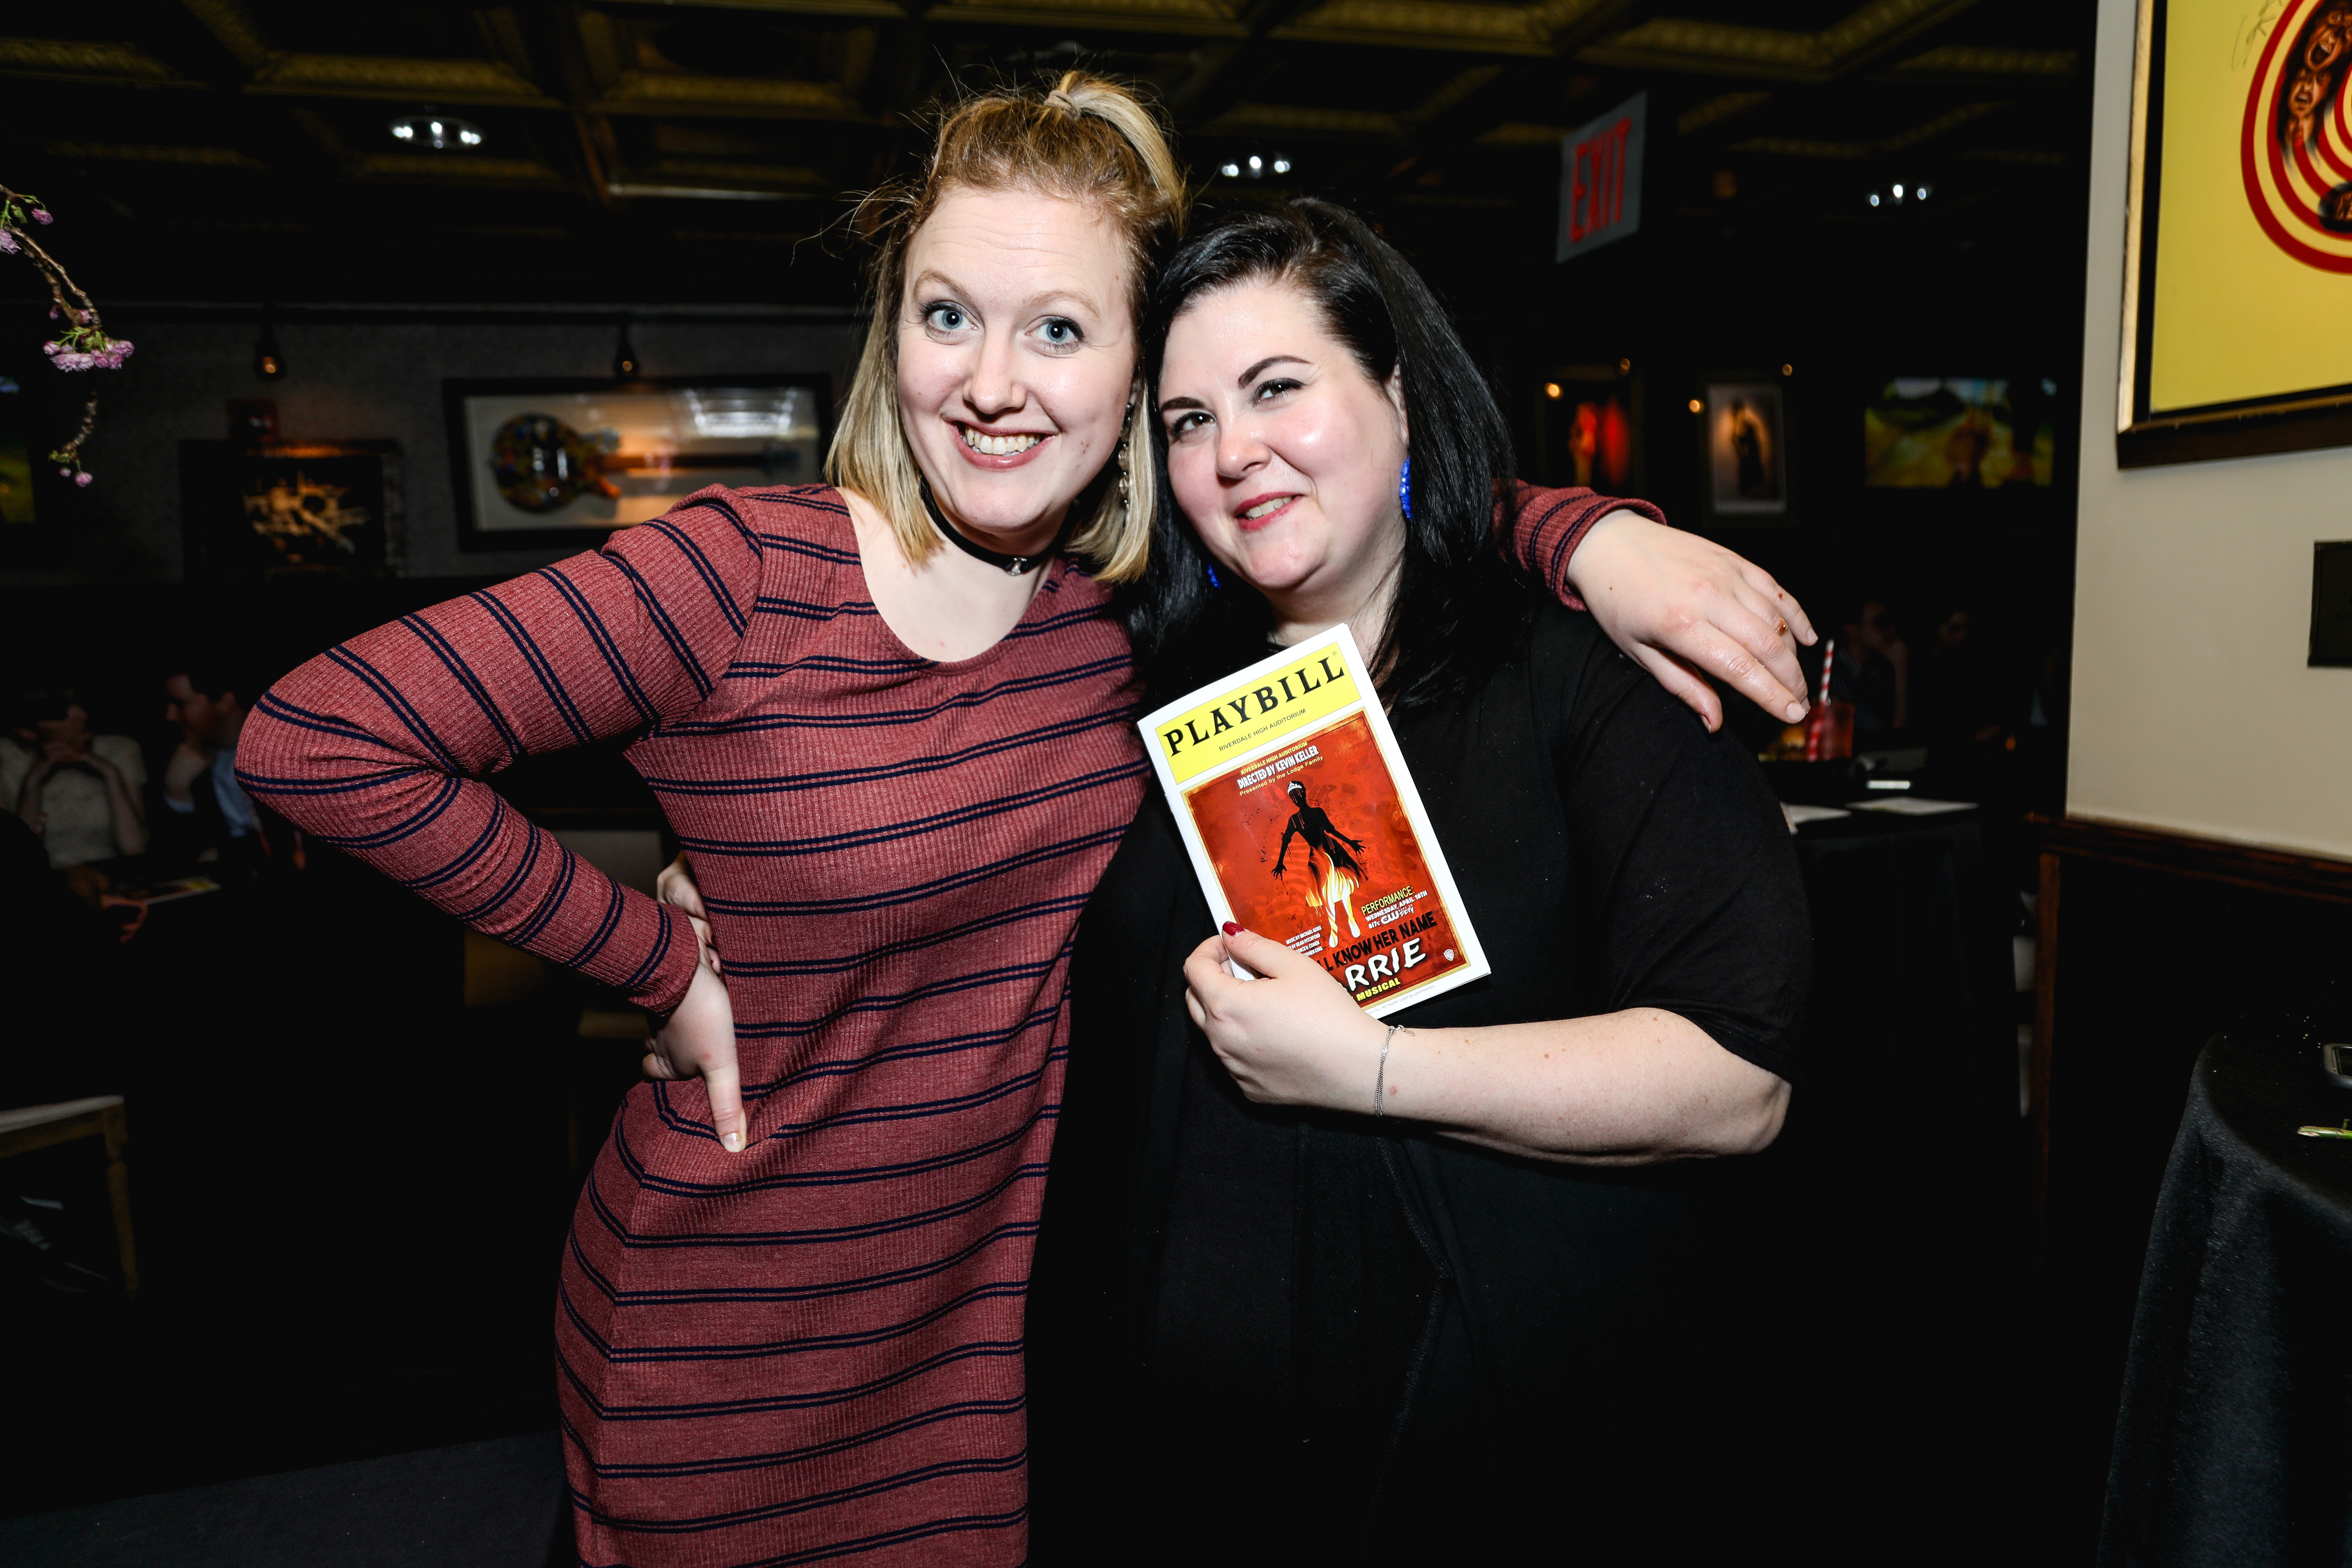 Go Inside Playbill's Exclusive Riverdale – Carrie: the